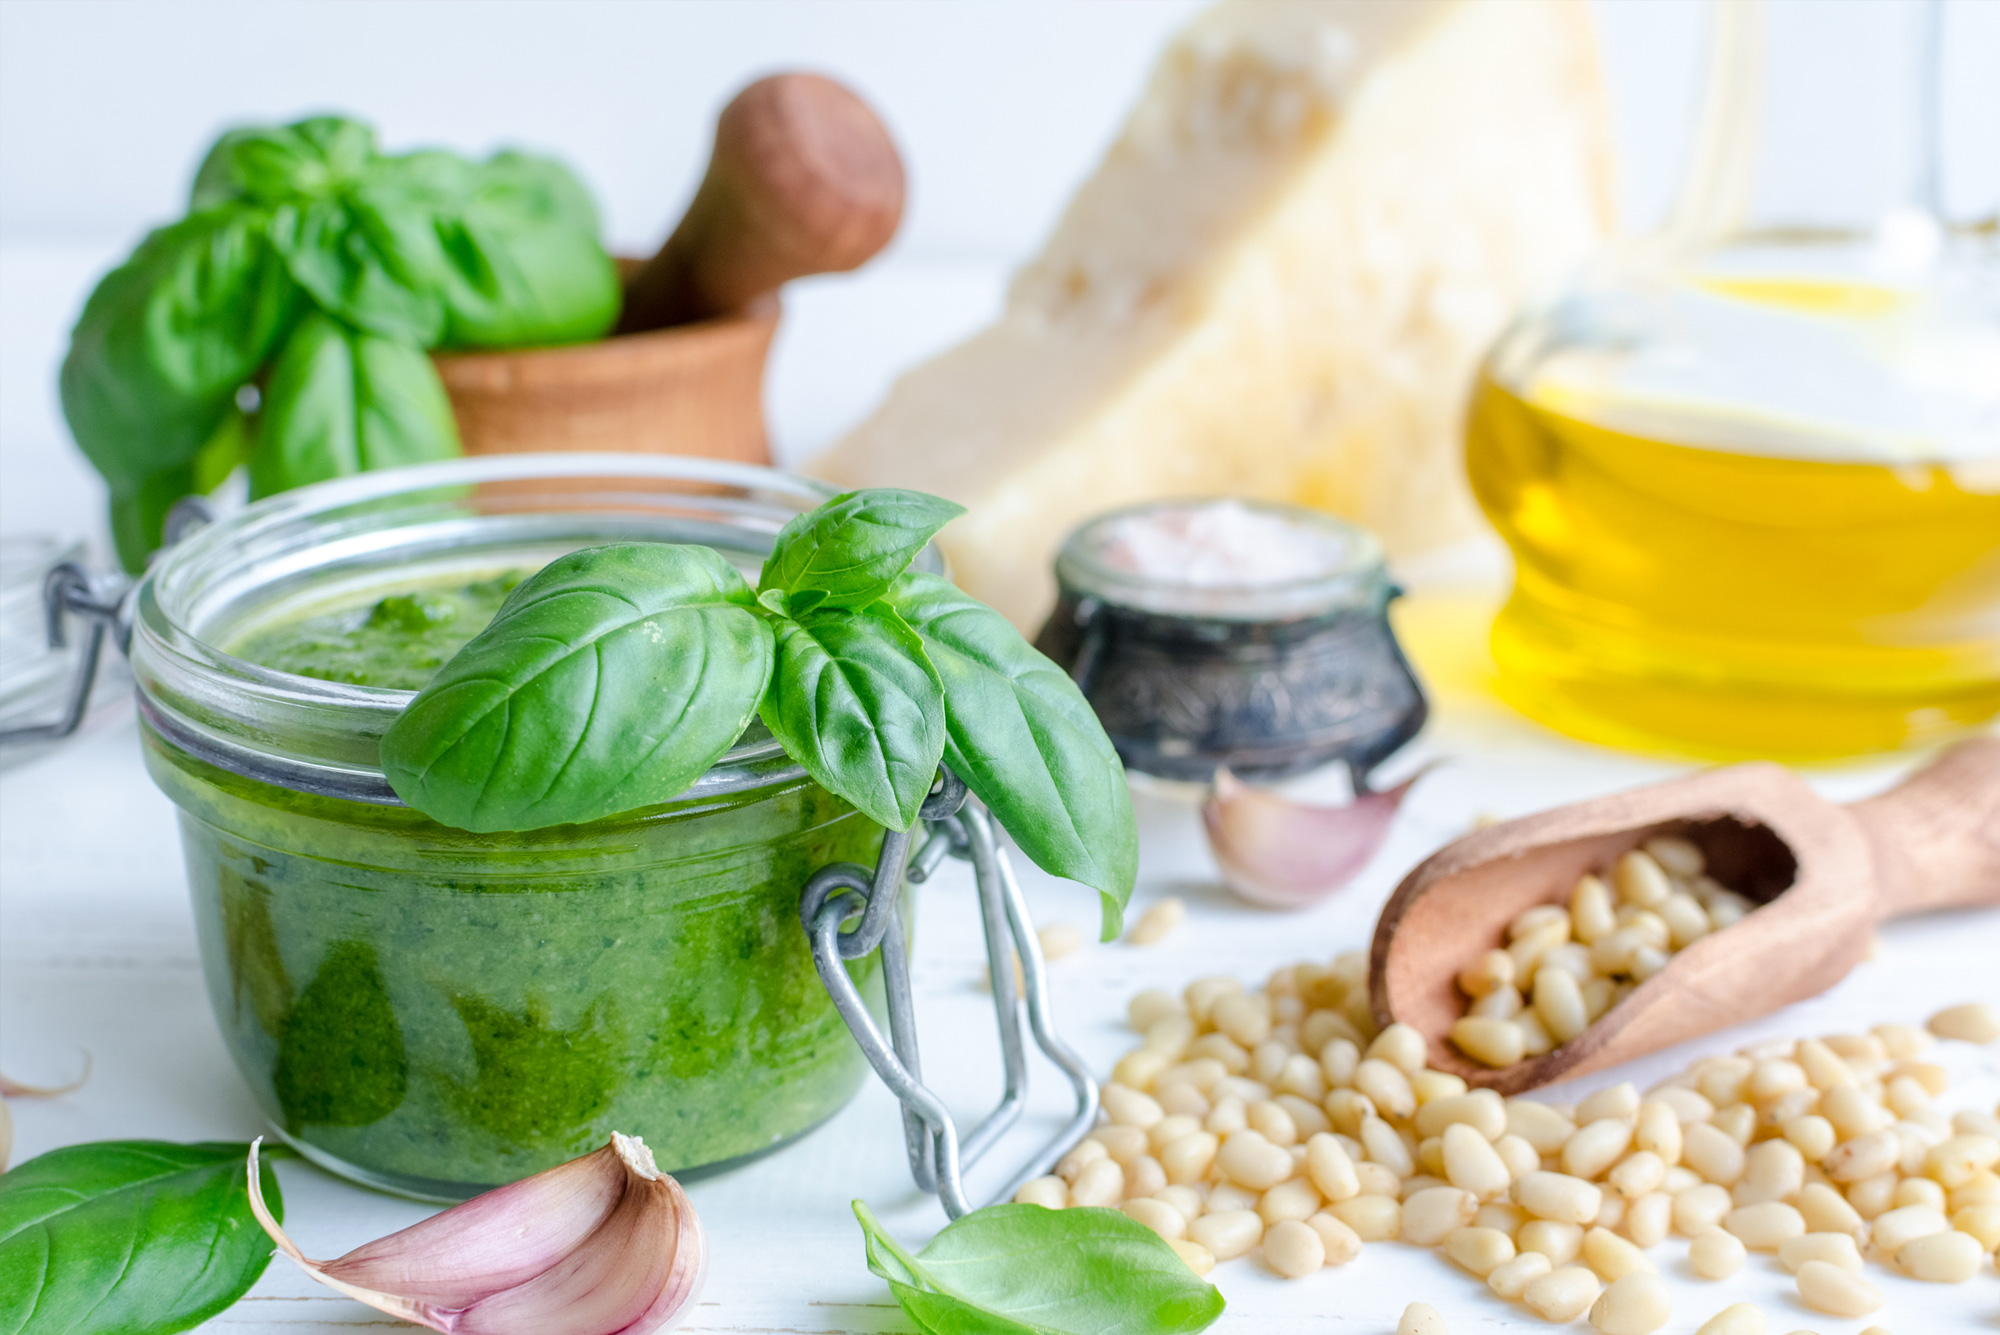 quanti tipi di pesto esistono grand chef evolution